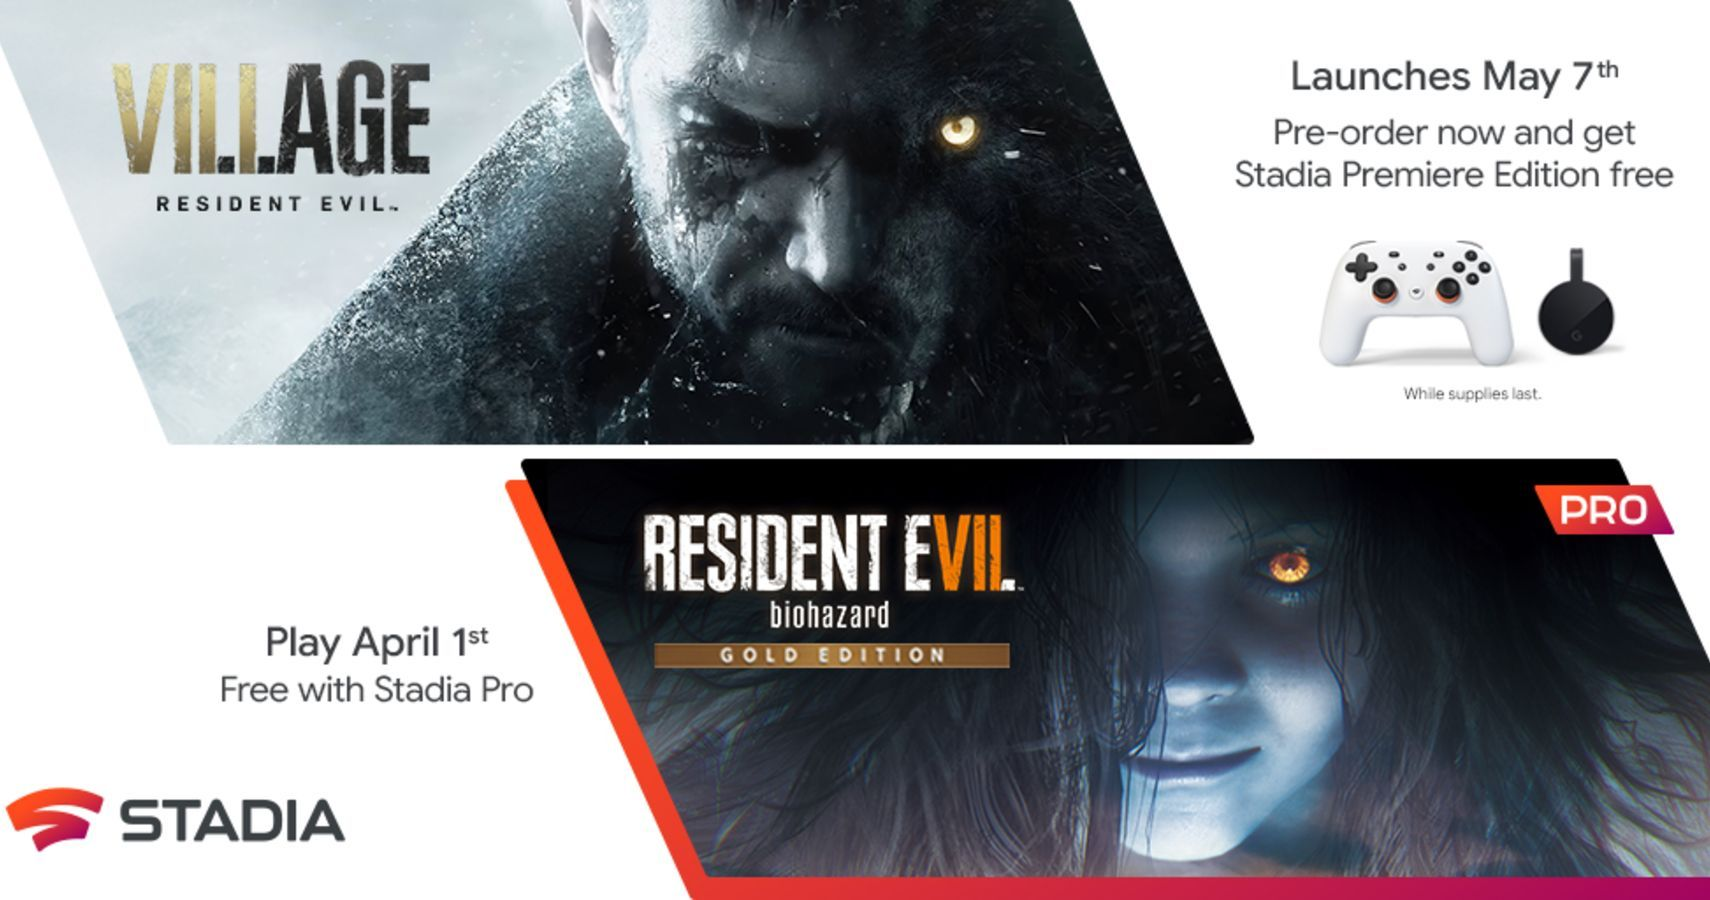 Resident Evil Village Coming To Stadia On May 7, Includes Stadia Premiere Edition For Free